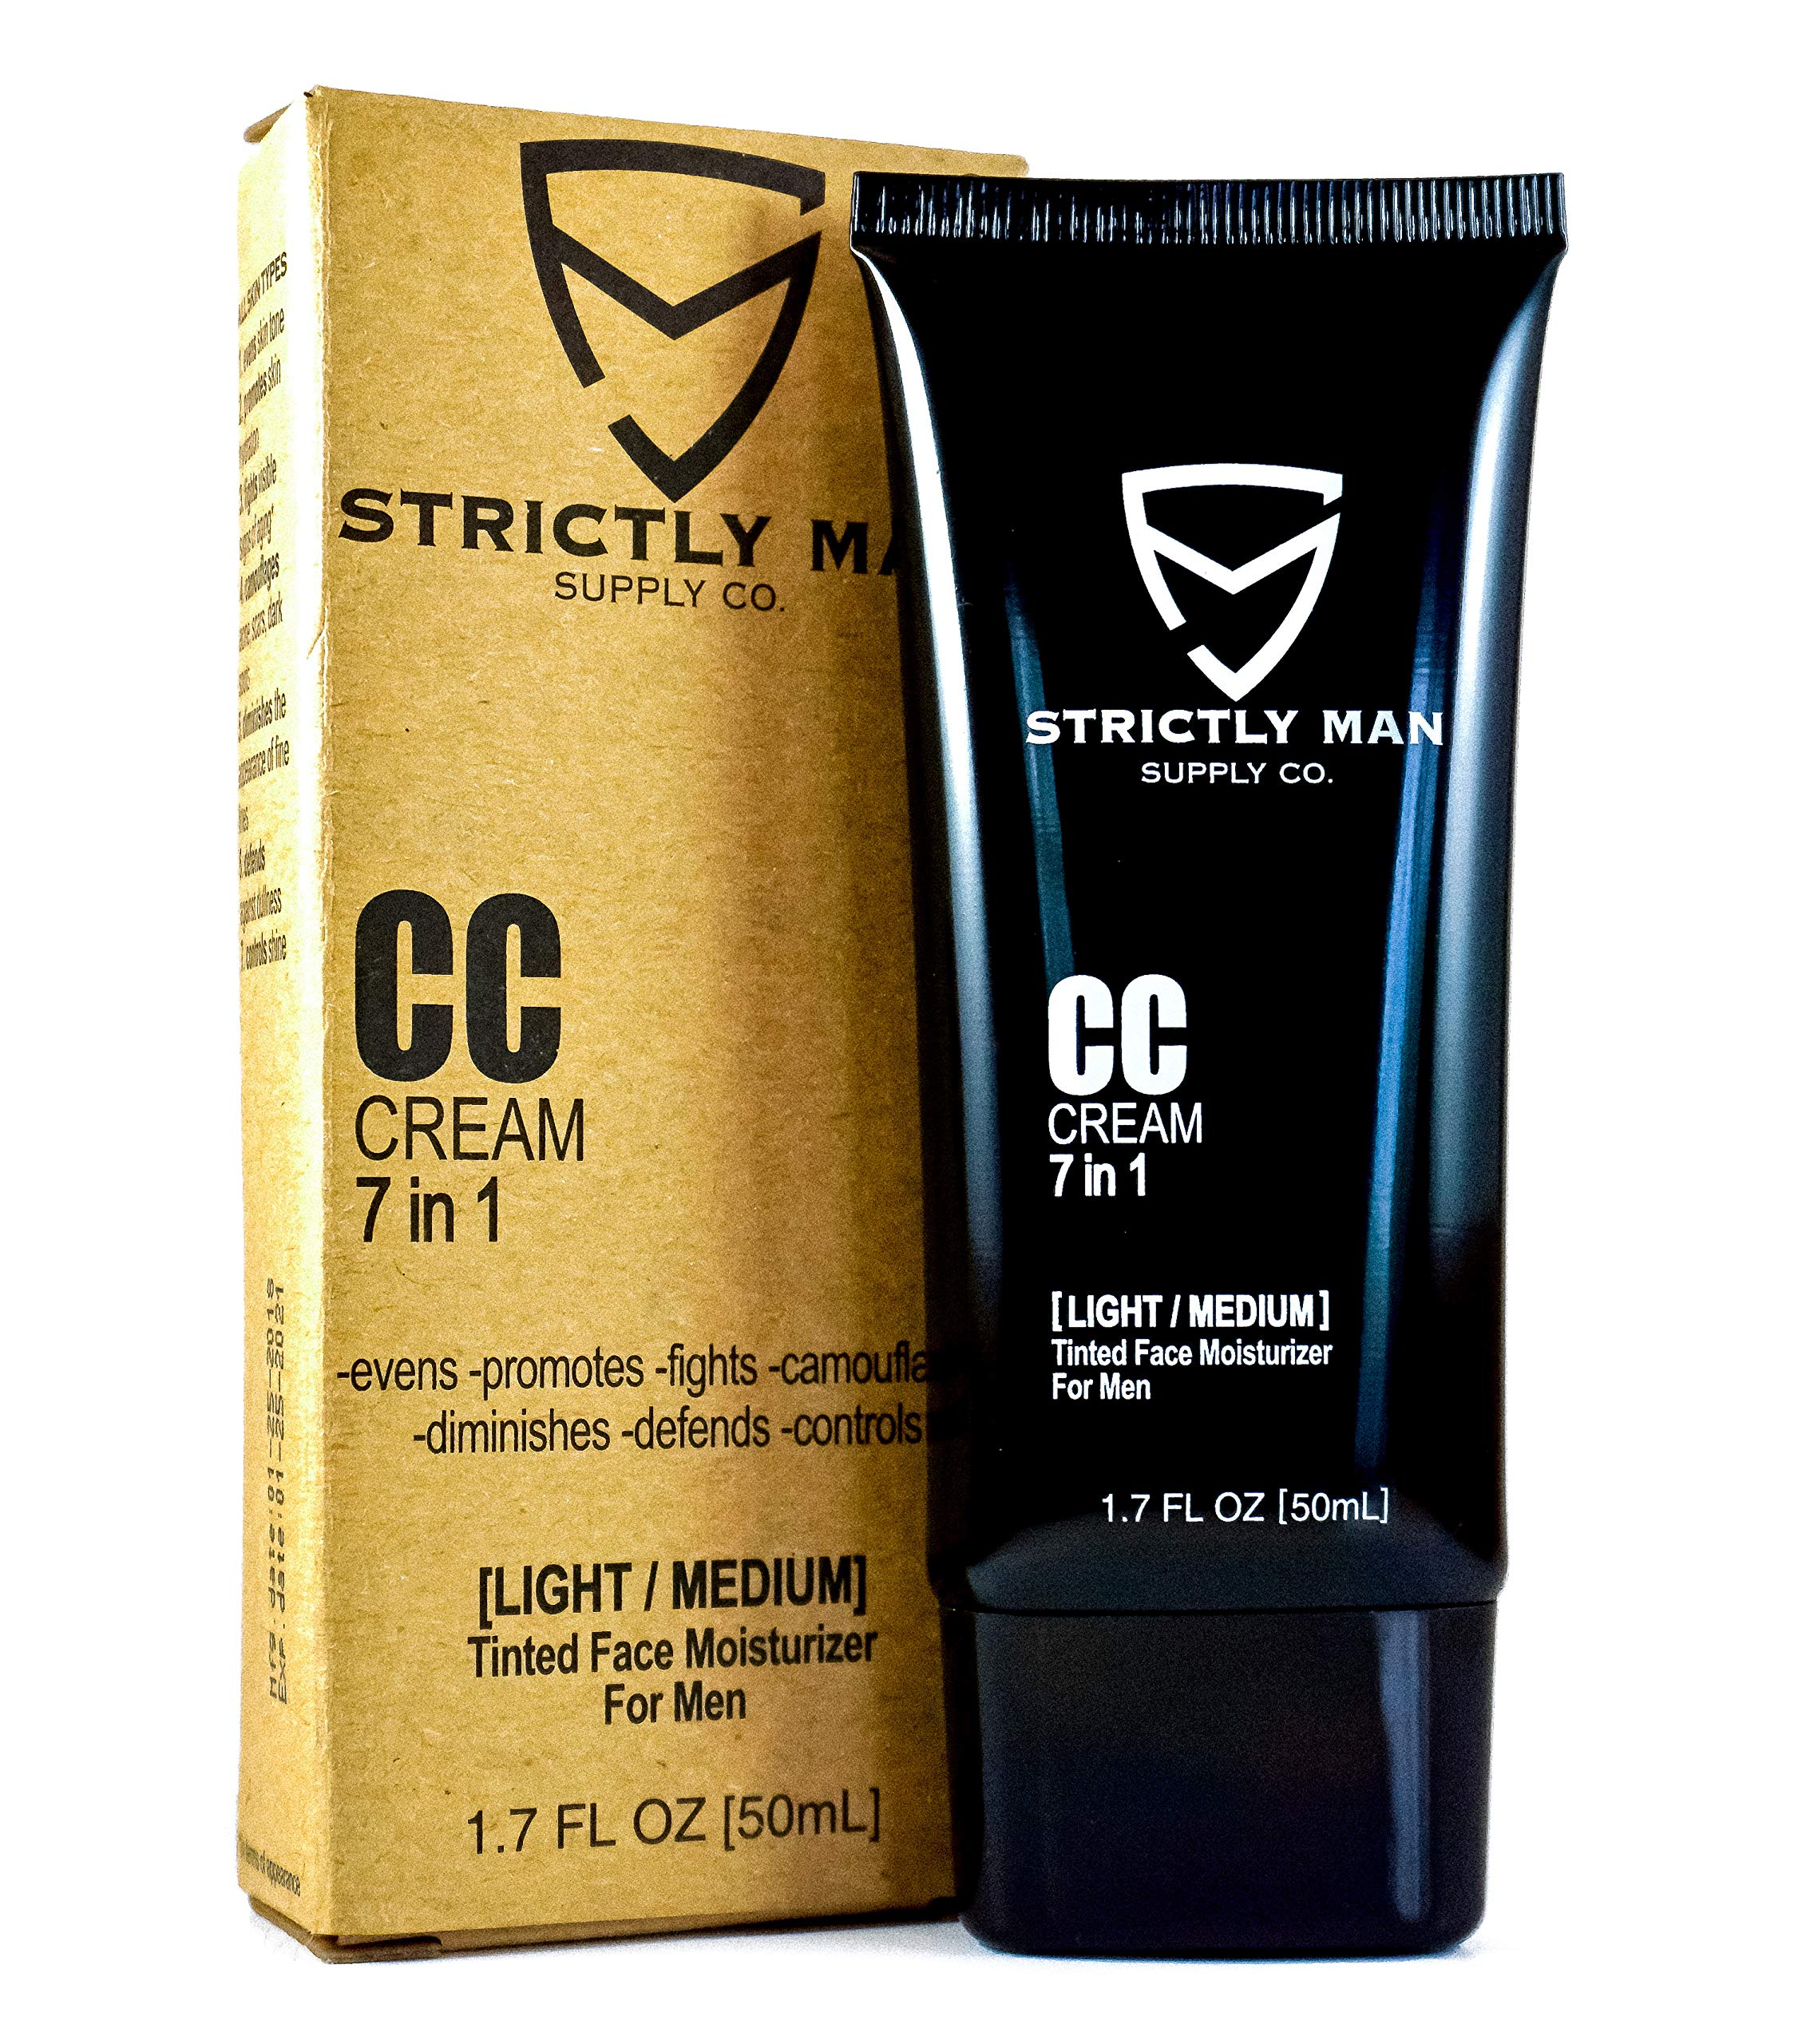 CC Cream for Men by Strictly Man Supply Co. | 7 in 1 Tinted Face Moisturizer for Men | Grooming for the Industrious Man | Light-Medium, 1.7 Ounces by Strictly Man Supply Co.